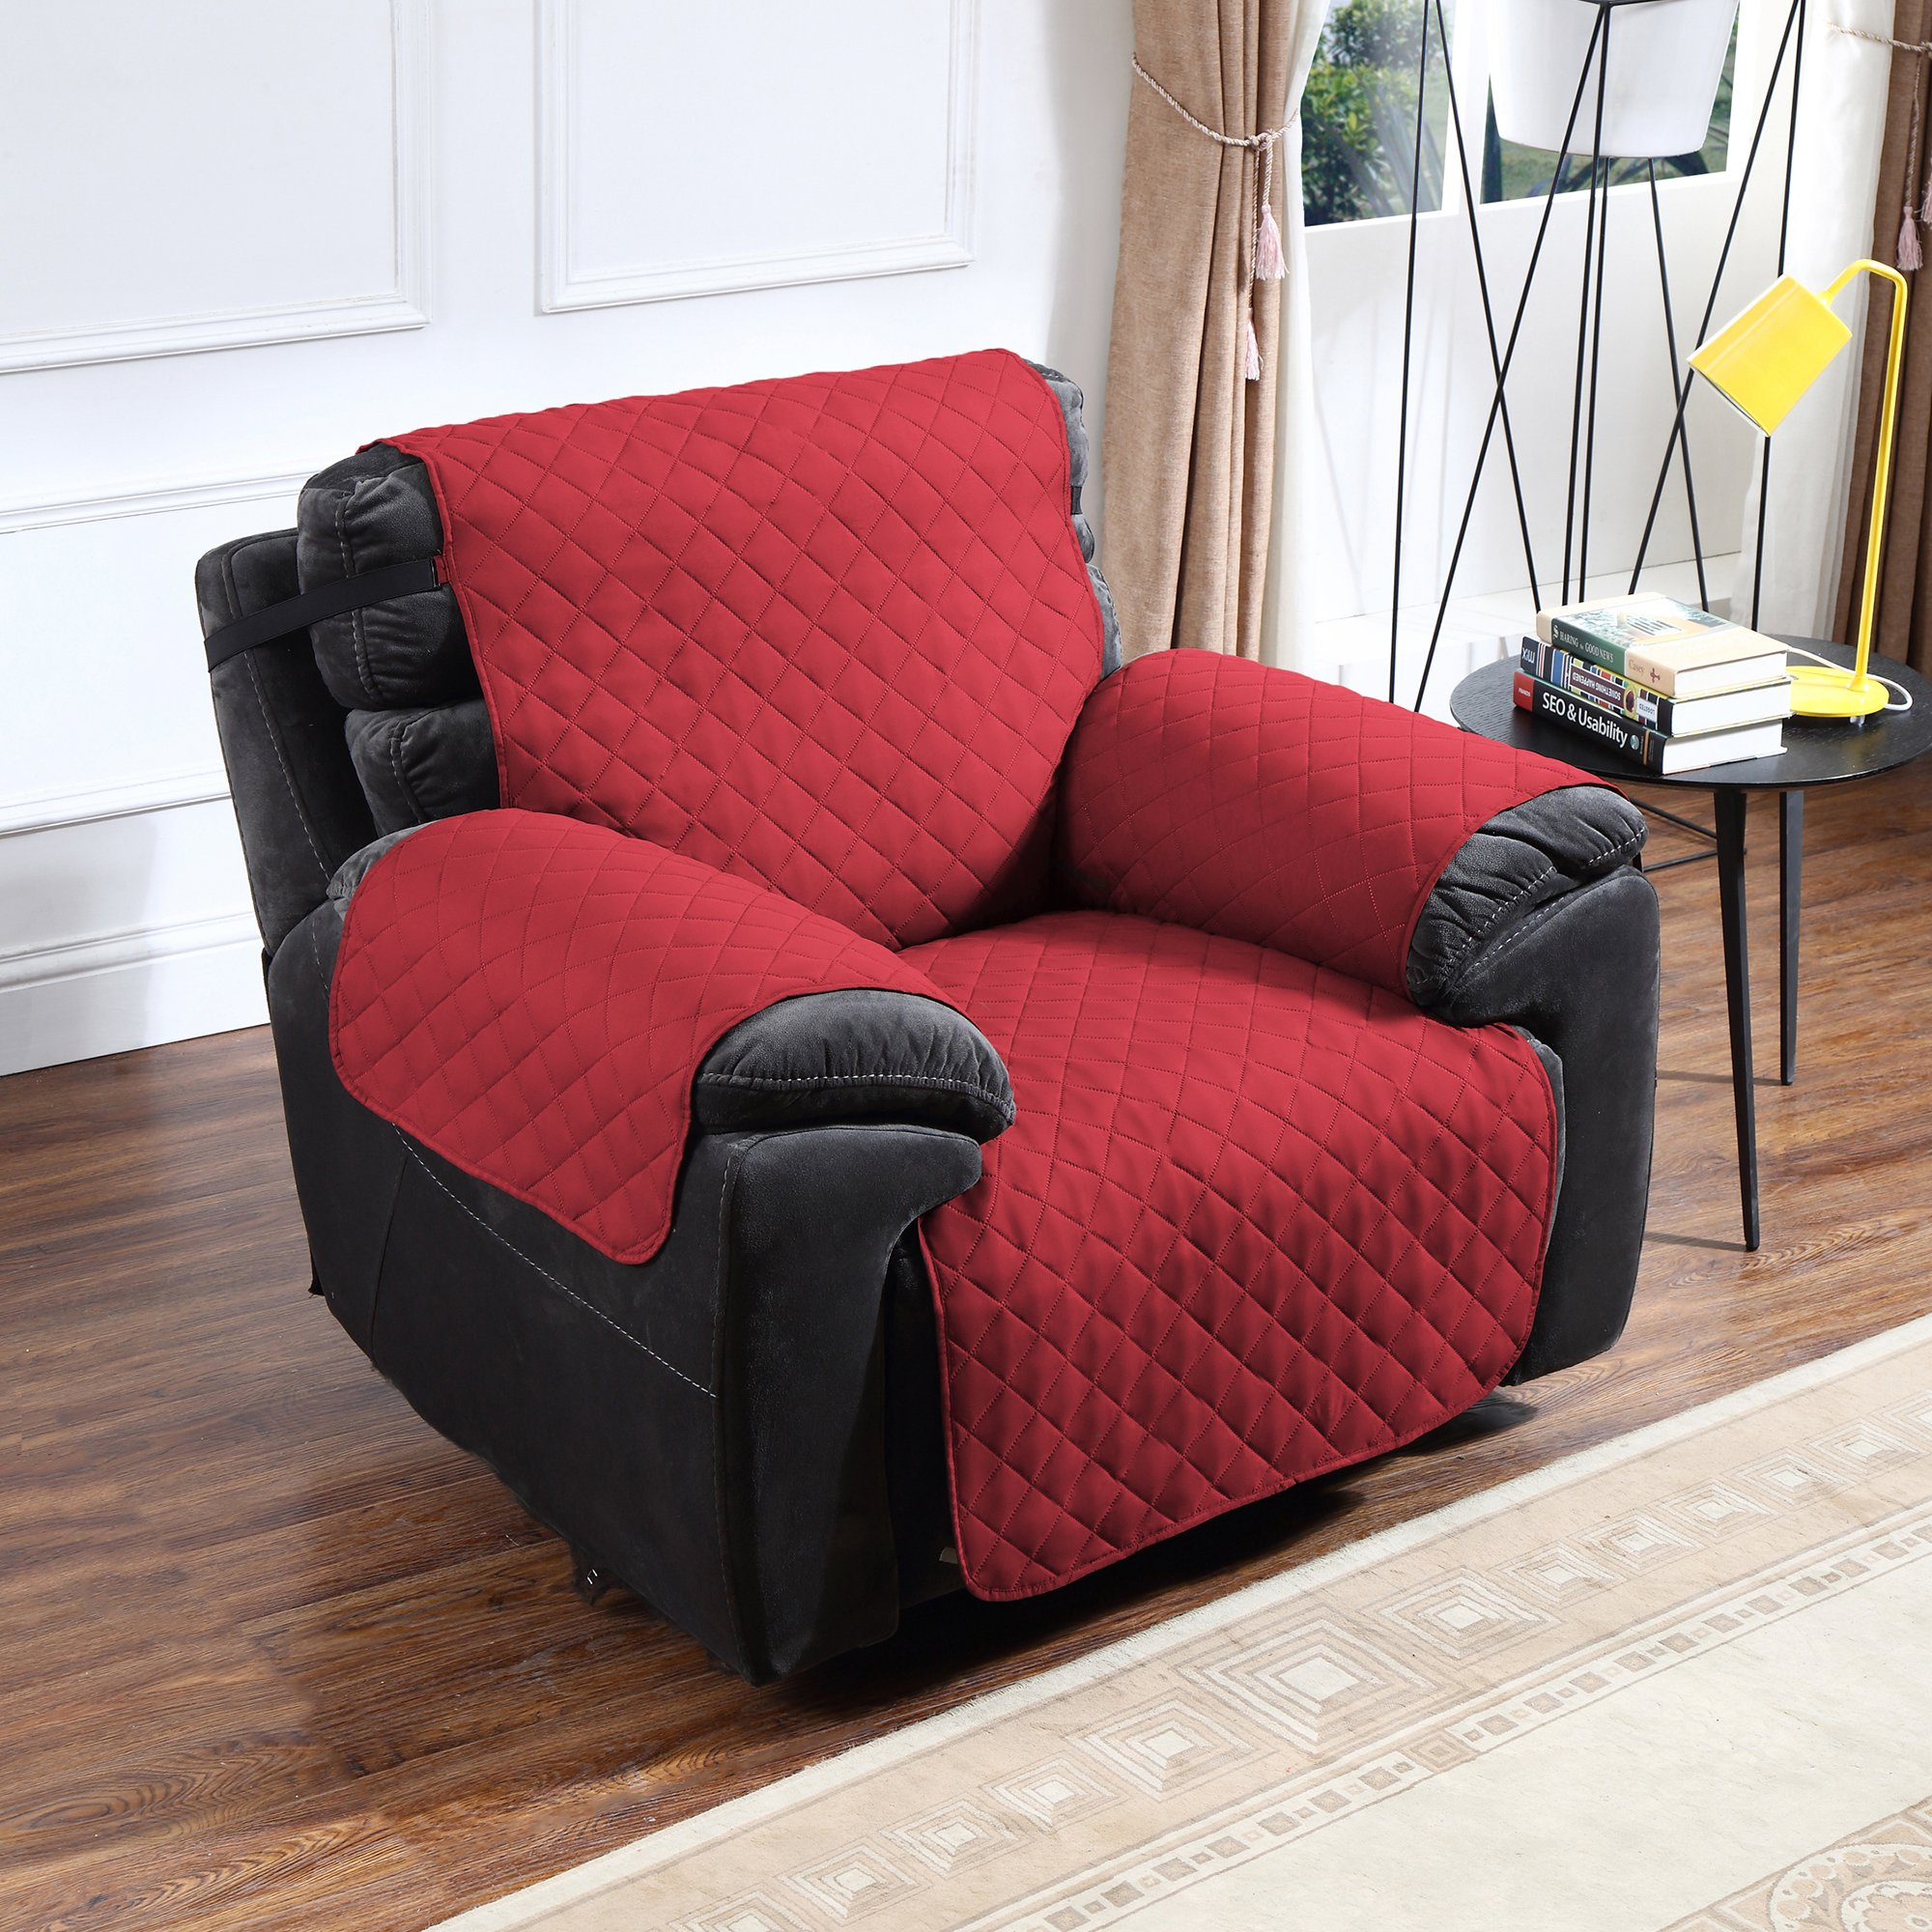 Argstar Reversible Cover of Recliner Chair Furniture Slipcover Home Decor Red/Tan